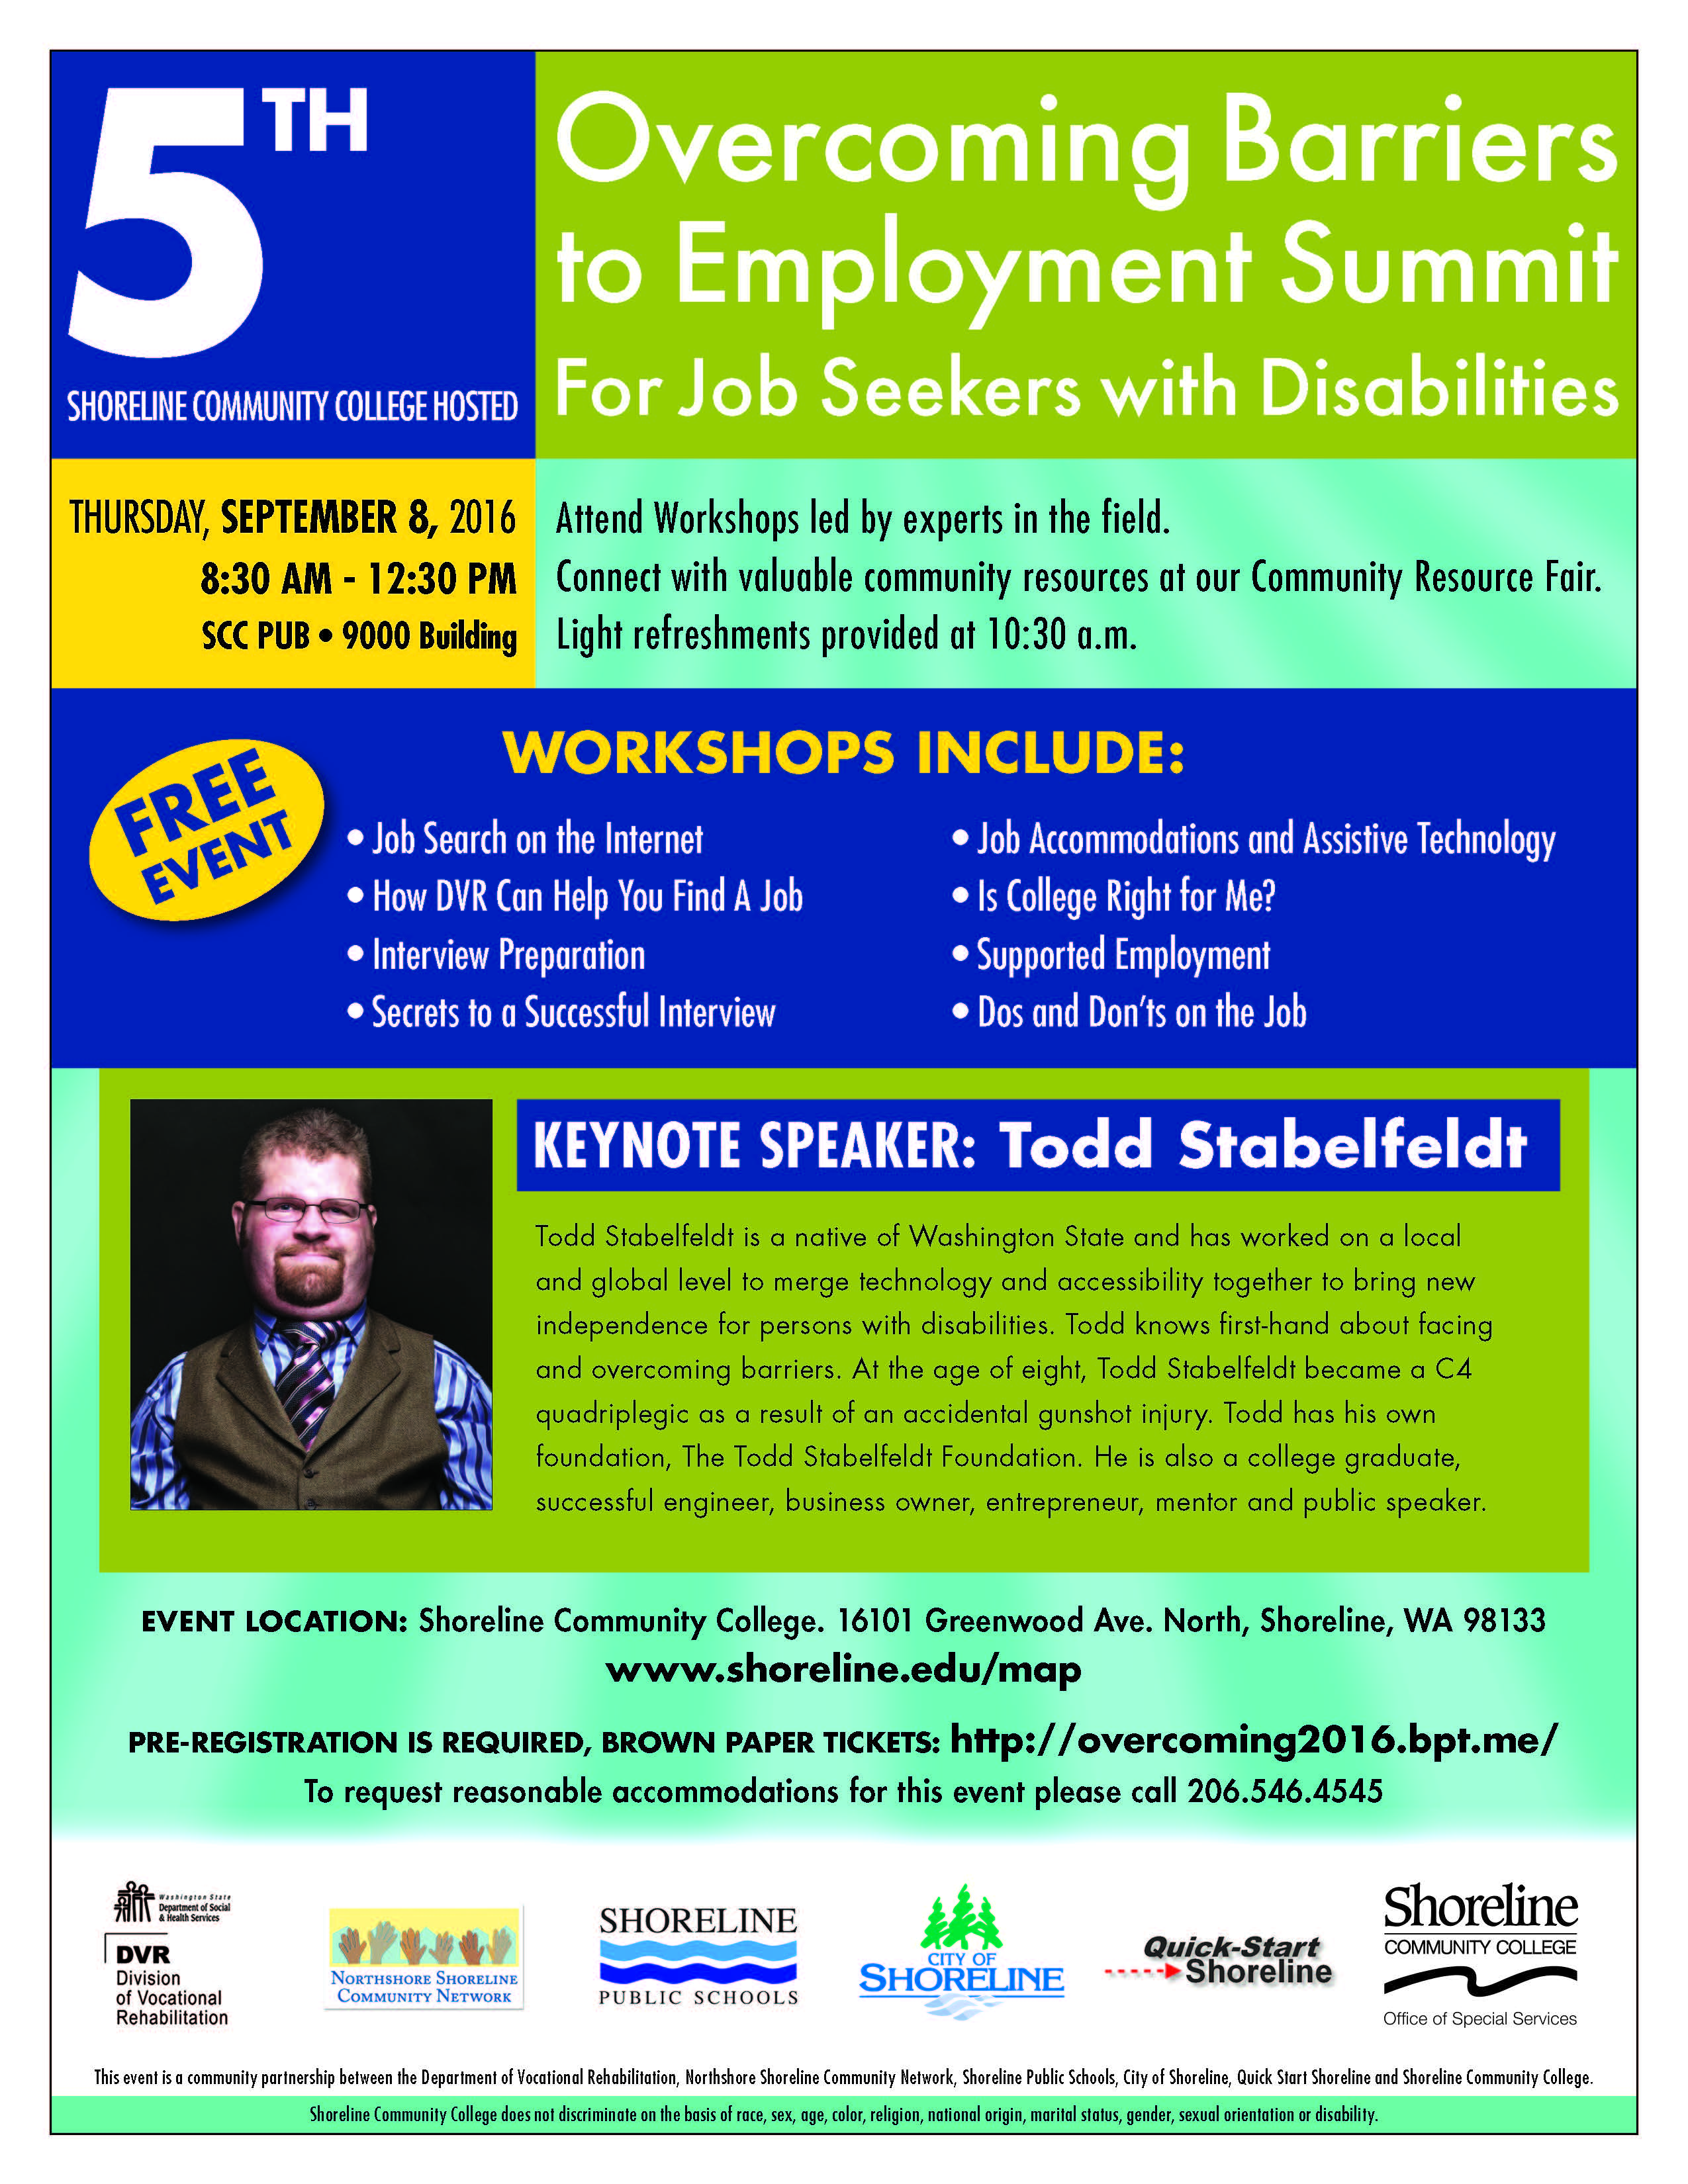 Overcoming barriers to employment summit sept